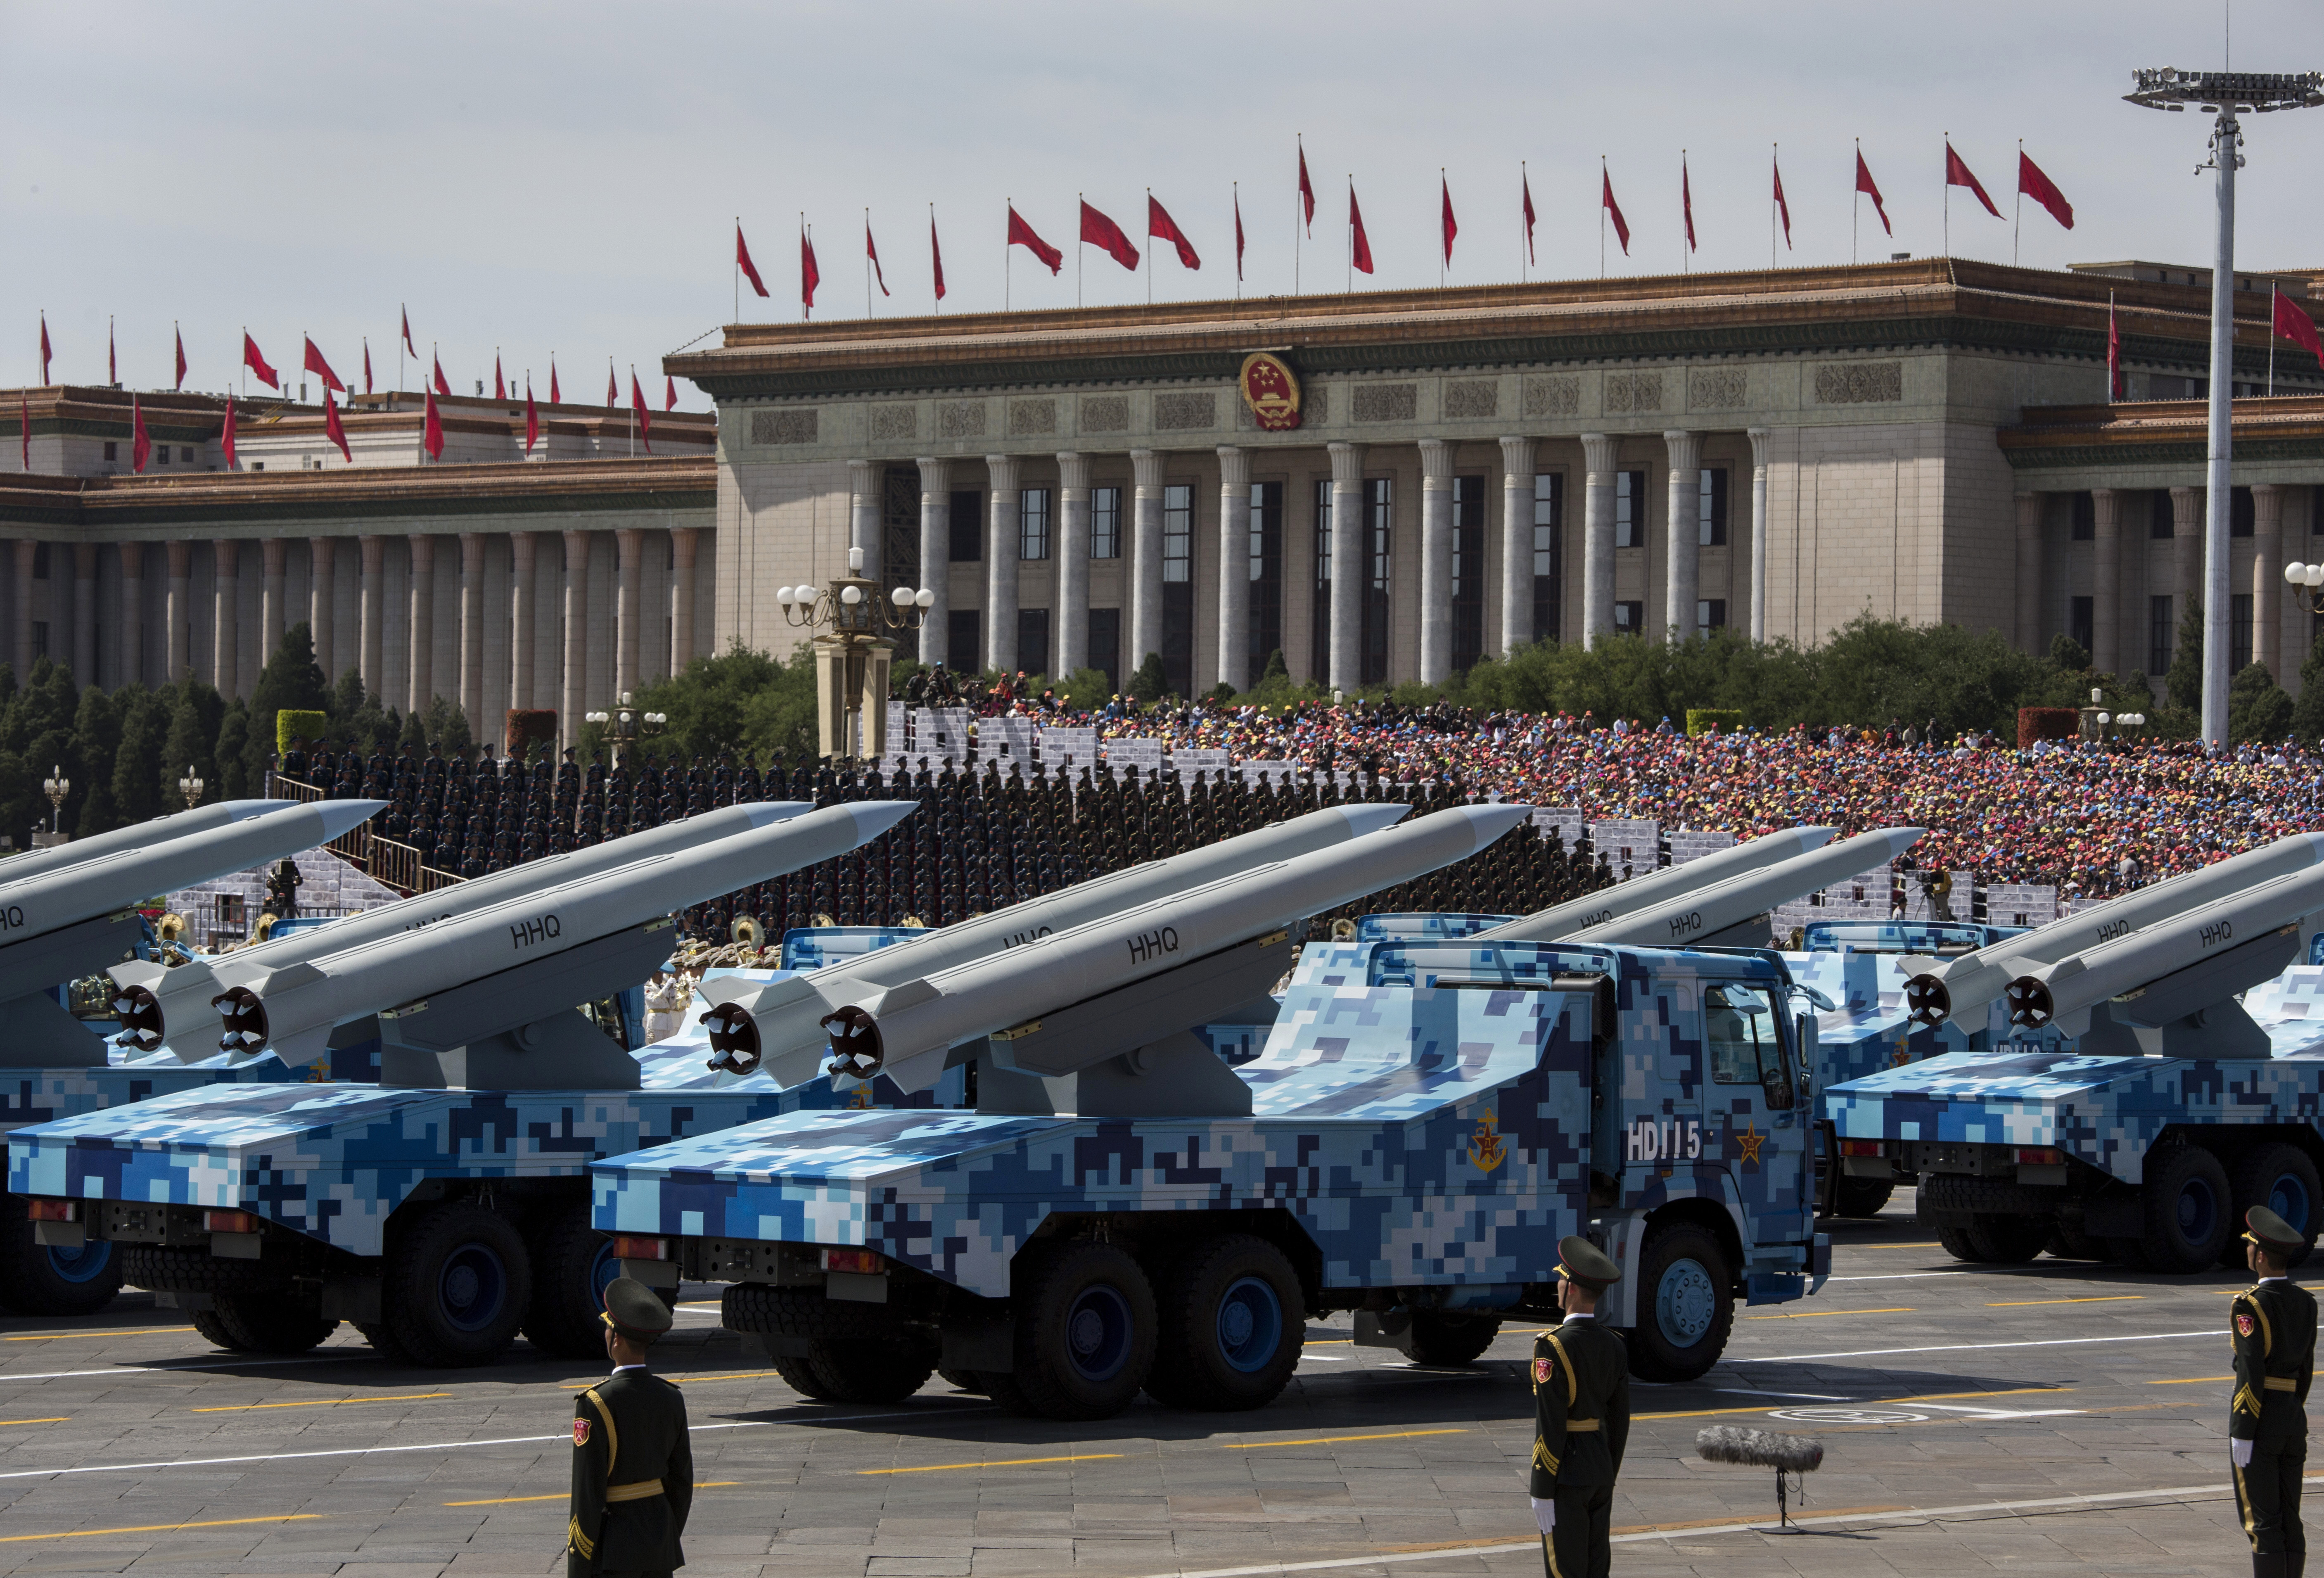 Chinese missiles are on trucks during a military parade in Beijing on Sept. 3. (Kevin Frayer/Getty Images)